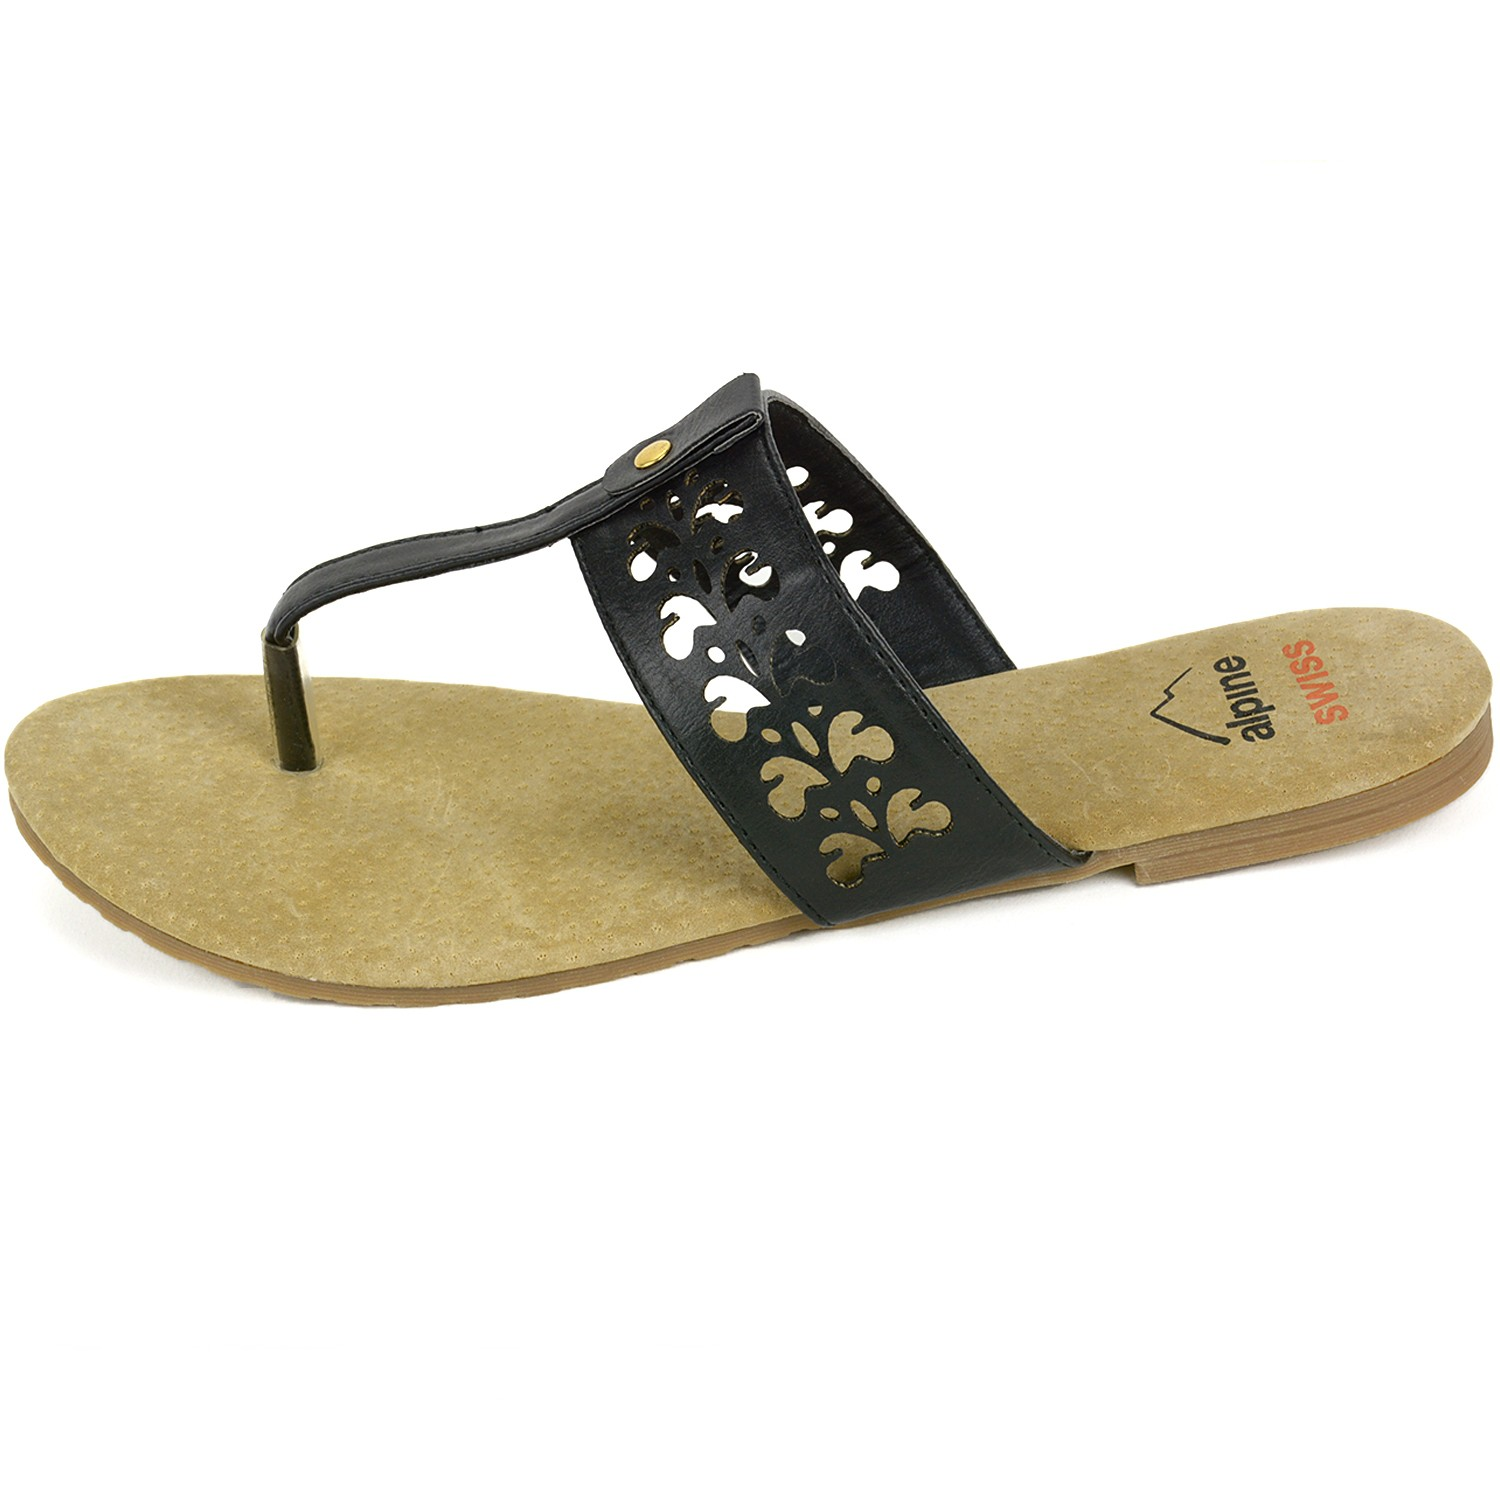 98a645802b9 Alpine Swiss Womens Suede Sandals Floral Cut Out Faux Leather T ...